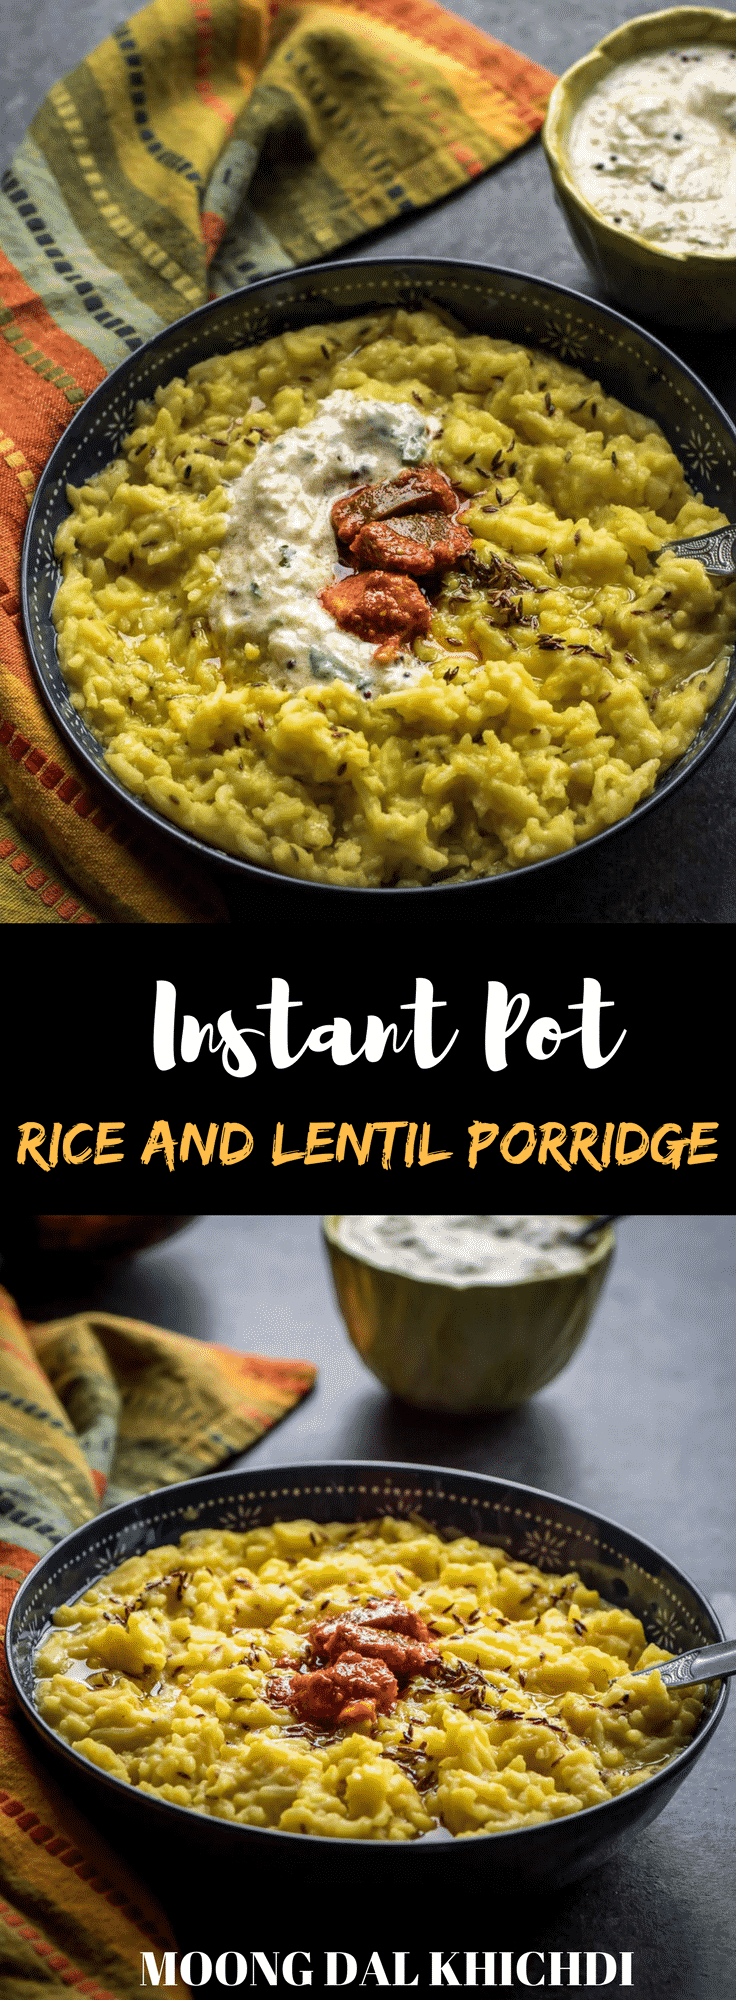 A wholesome and nutritious meal -this one-pot, 5-ingredient Moong dal khichdi (rice and lentil porridge) made from rice and split lentils is comfort food at its best and 30 minutes is all it takes. A perfect recipe for you to make in your Instant Pot.